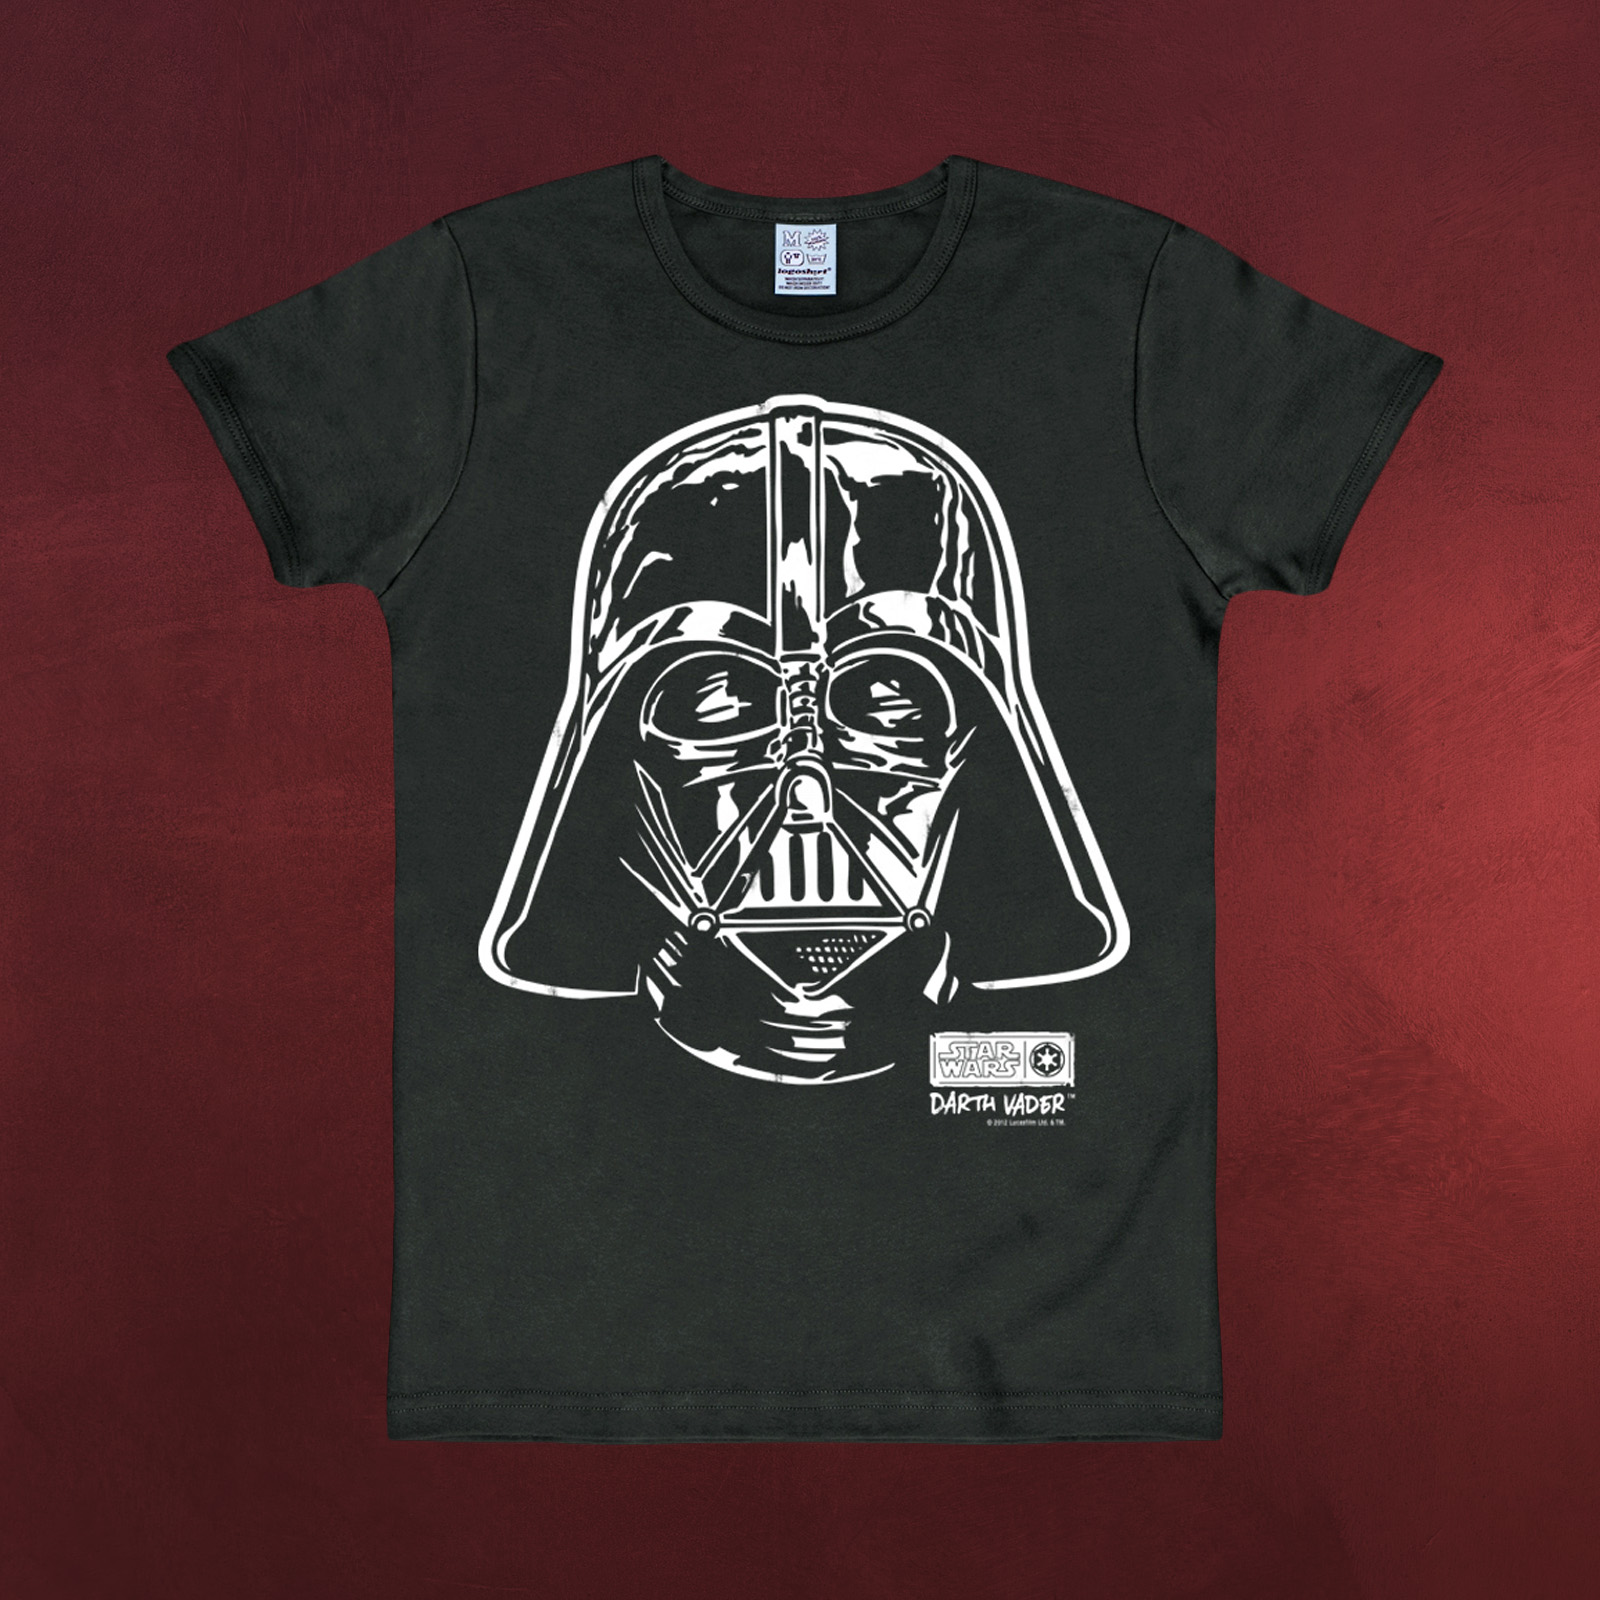 how to draw darth vader shirt